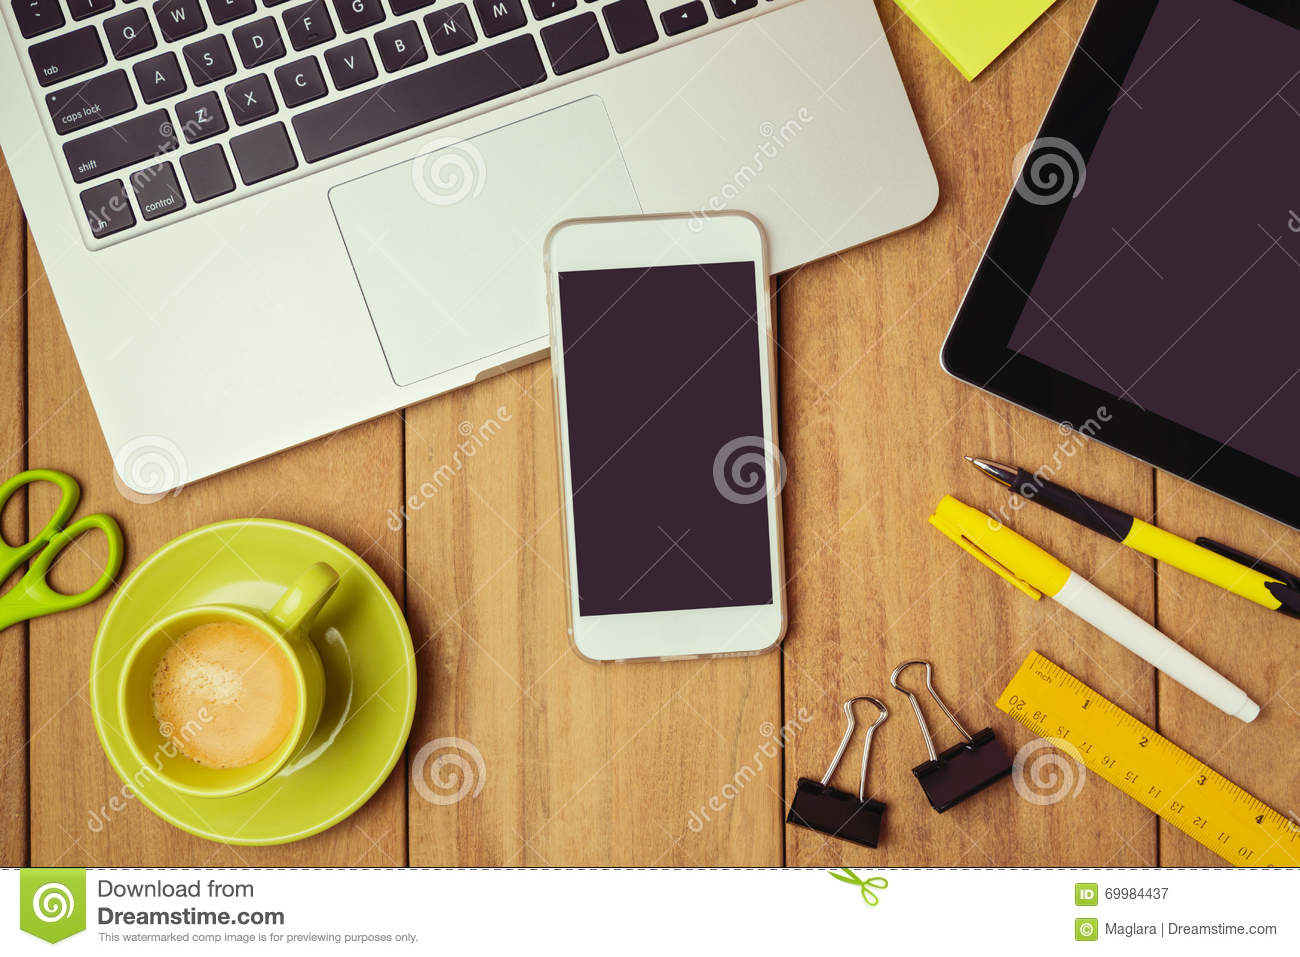 business background smartphone and laptop on office table business background smartphone and laptop on office table smartphone mock up template